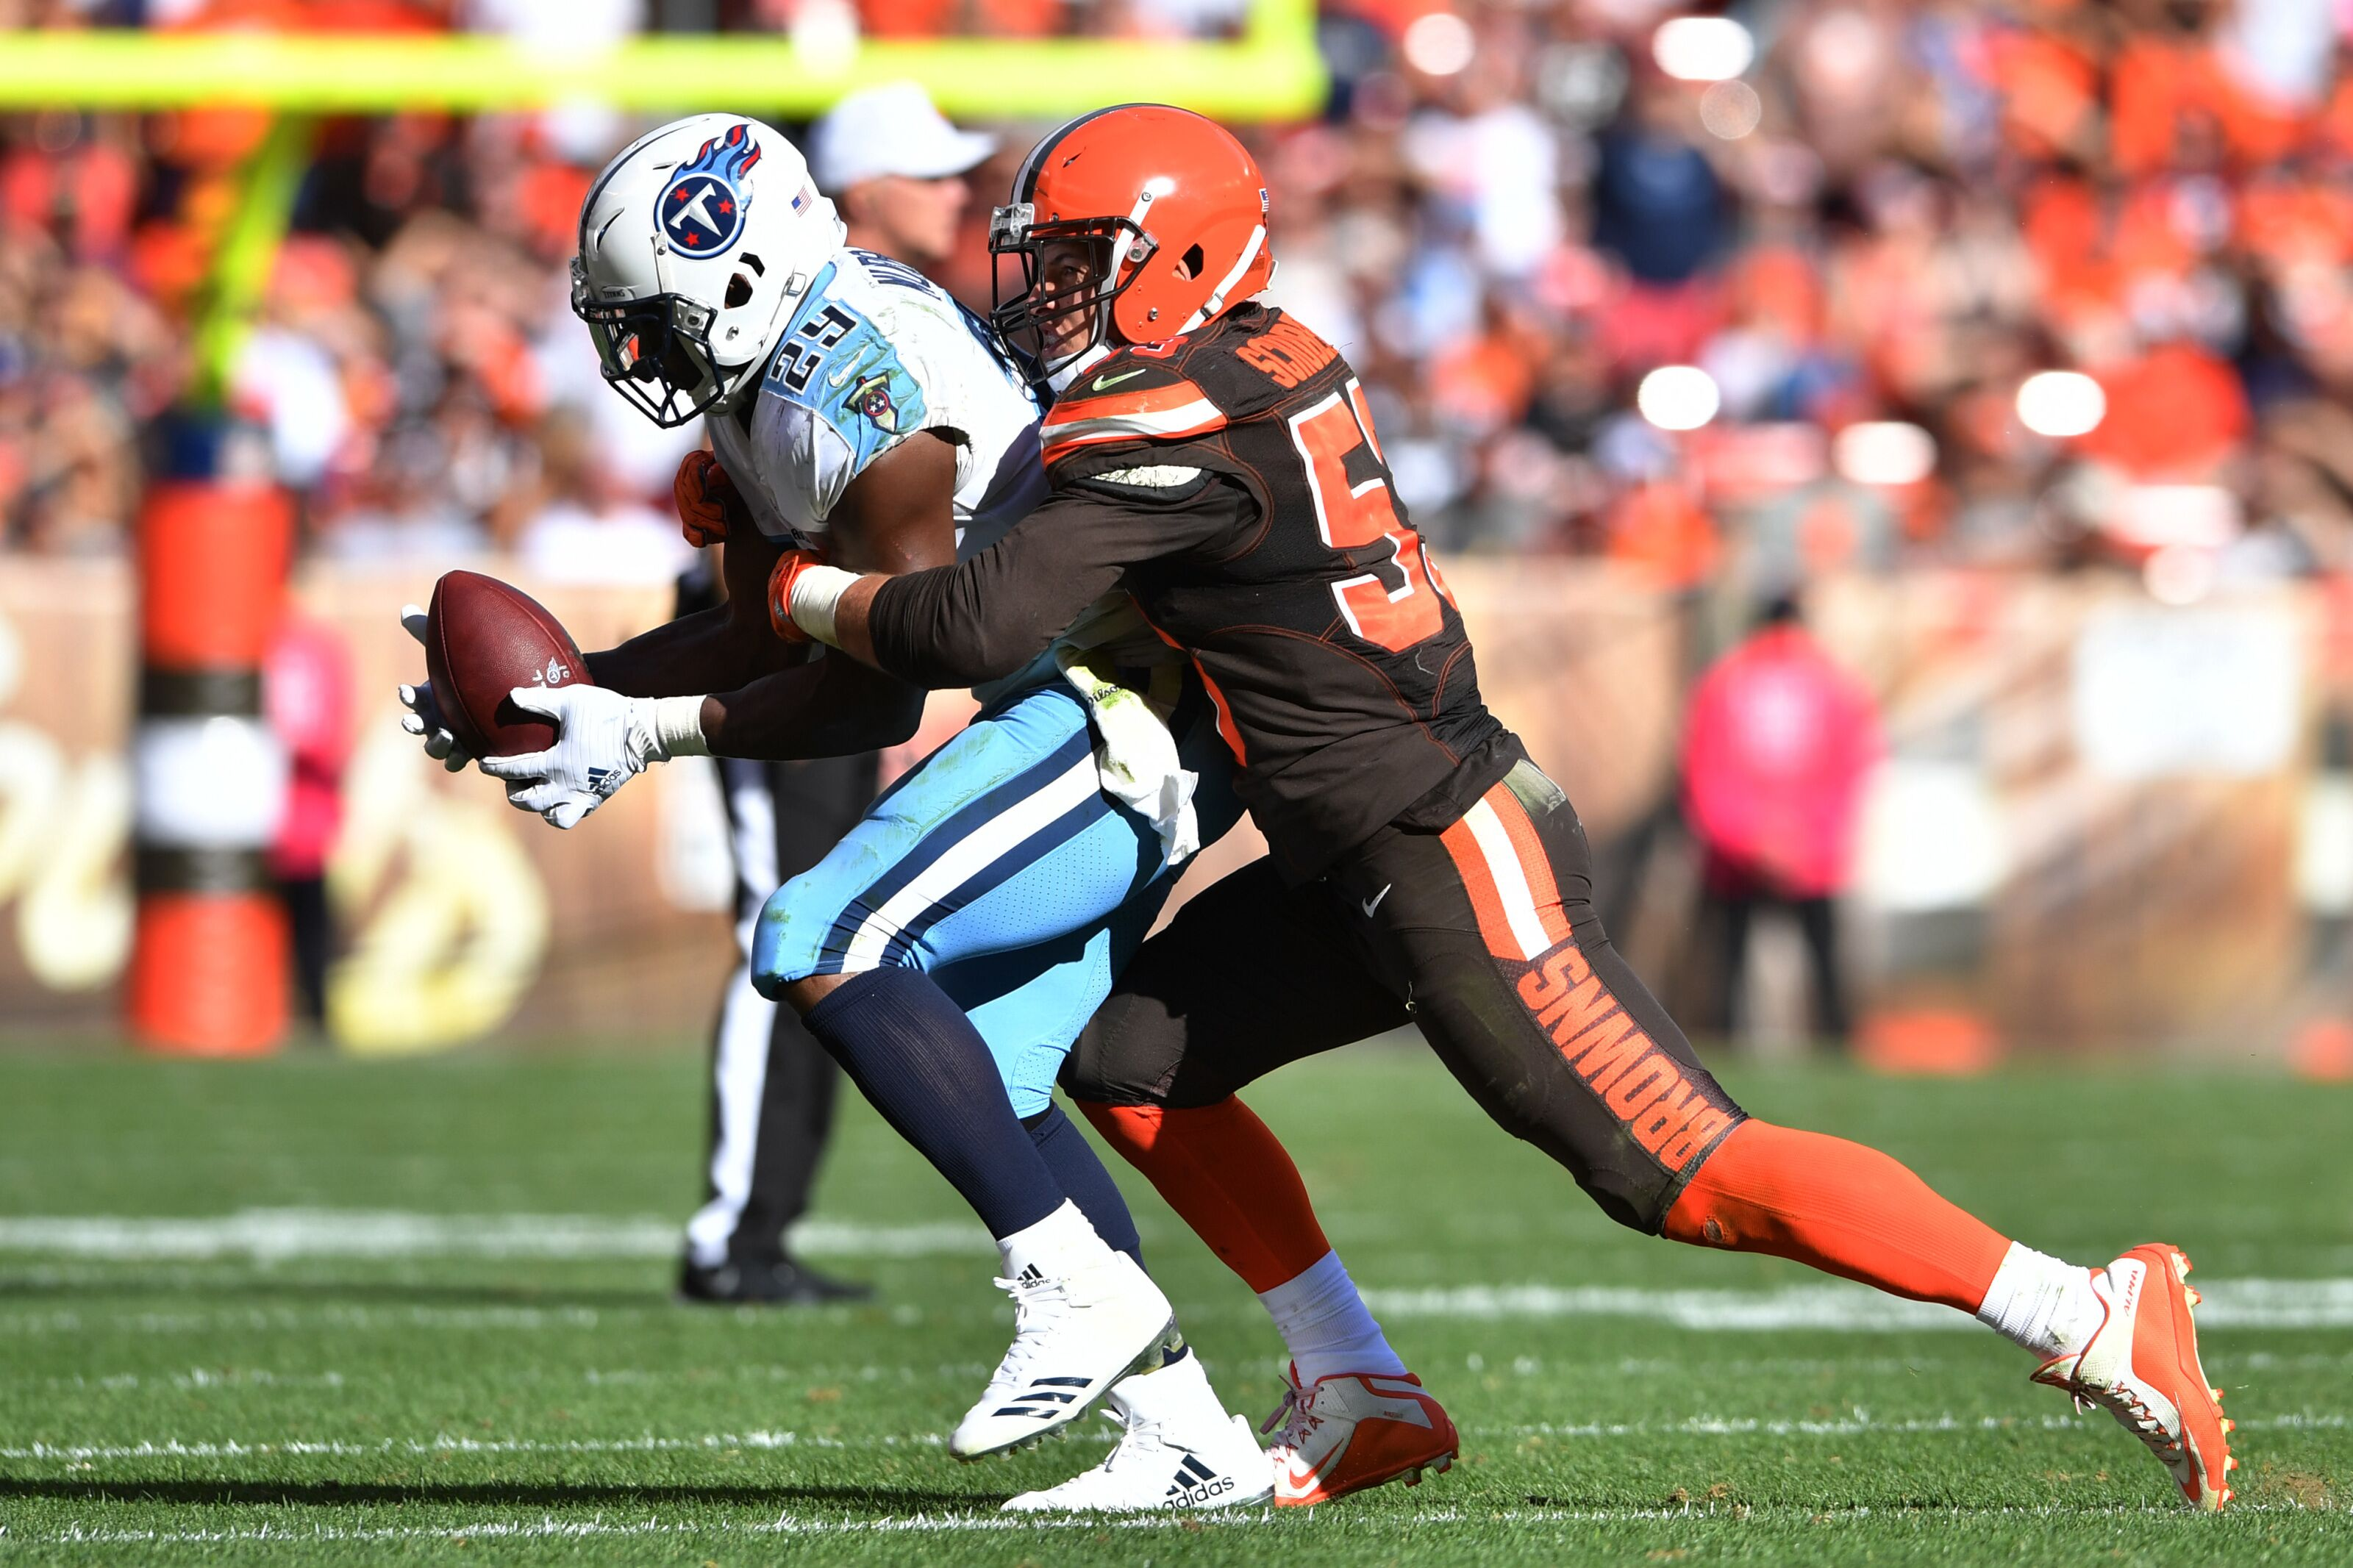 Cleveland Browns will host Tennessee Titans in 2019 season opener